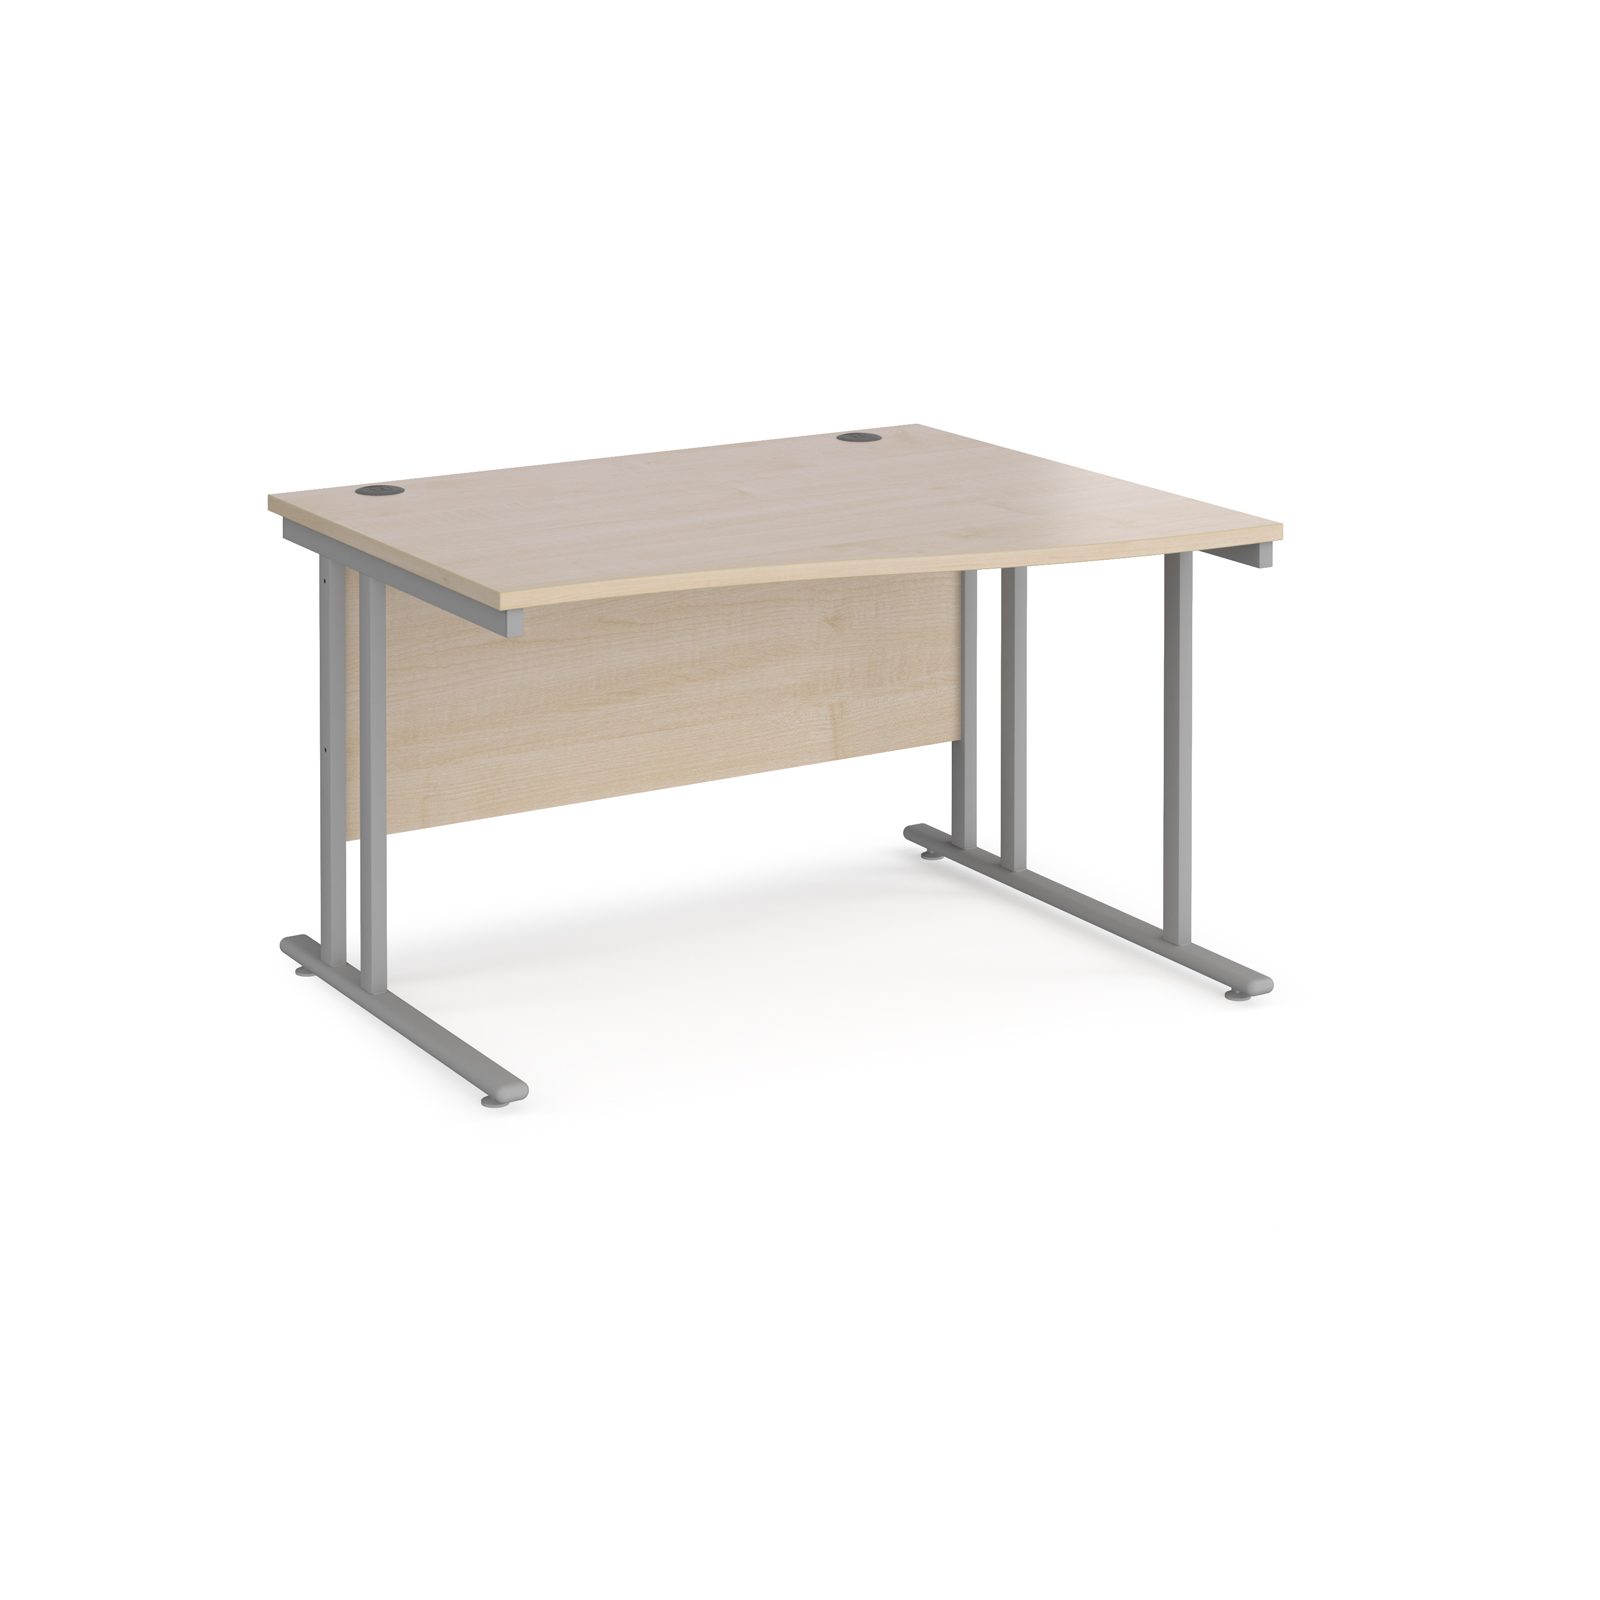 Right Handed Maestro 25 right hand wave desk 1200mm wide - silver cantilever leg frame, maple top